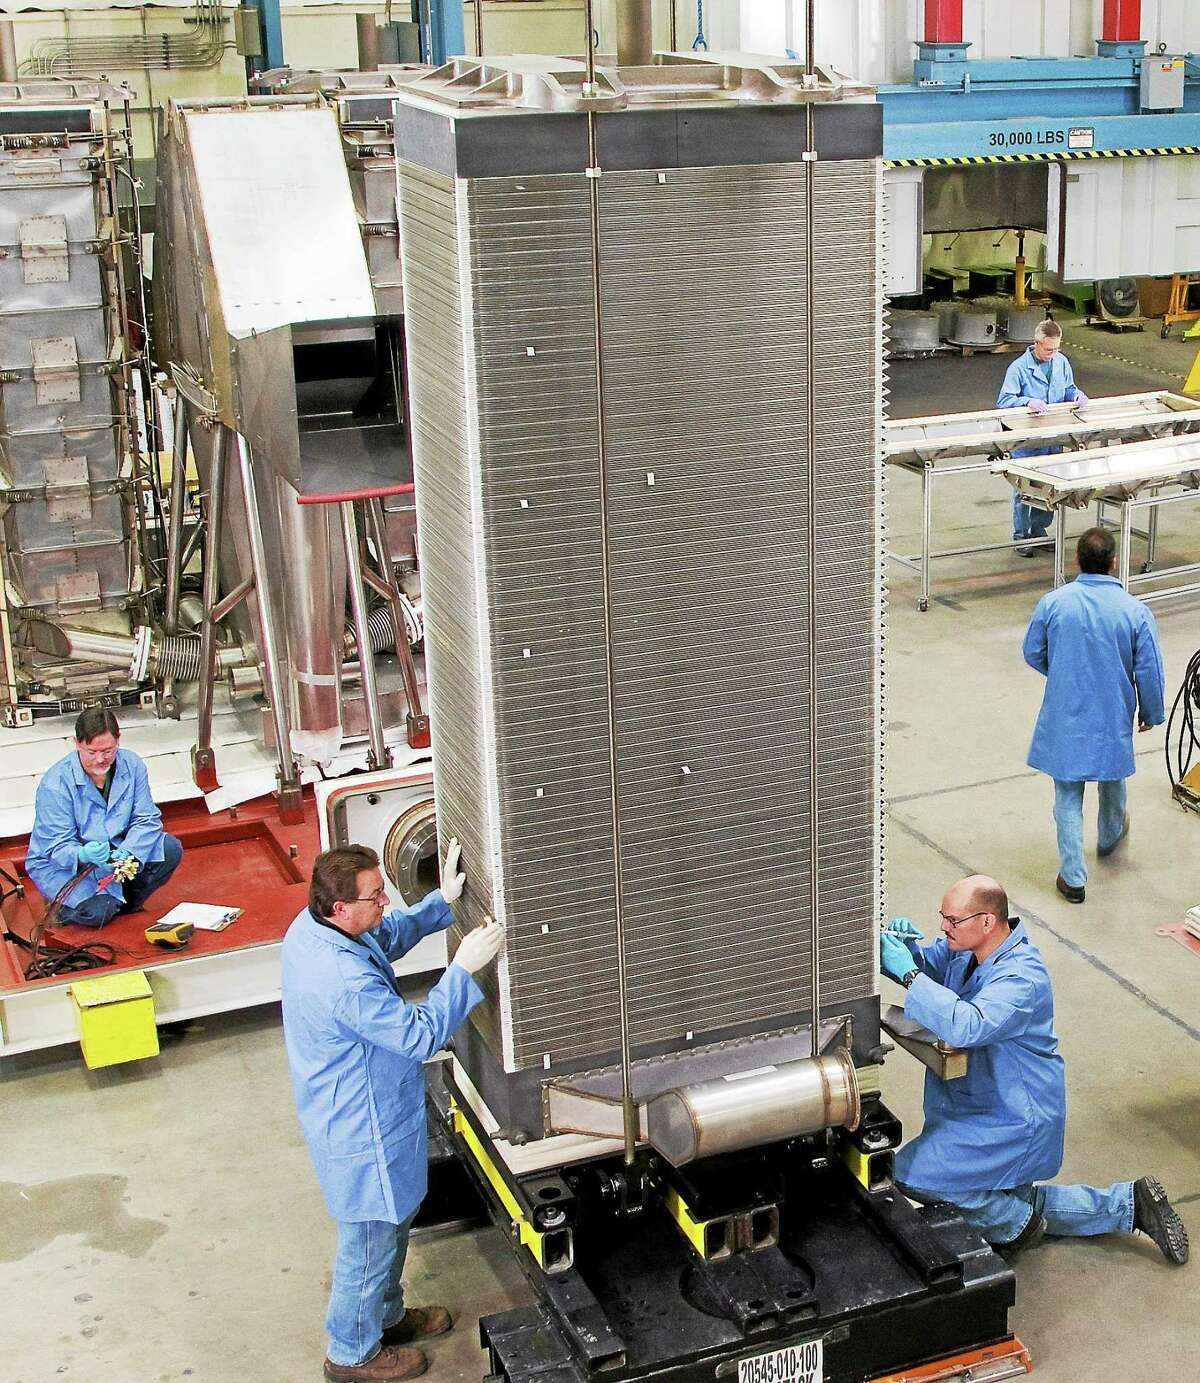 Employees at work inside the FuelCell Energy manufacturing facility in Torrington. On Wednesday, the company announced plans for a $65 million two-phased expansion to the facility and expects to create up to 325 jobs over four years.